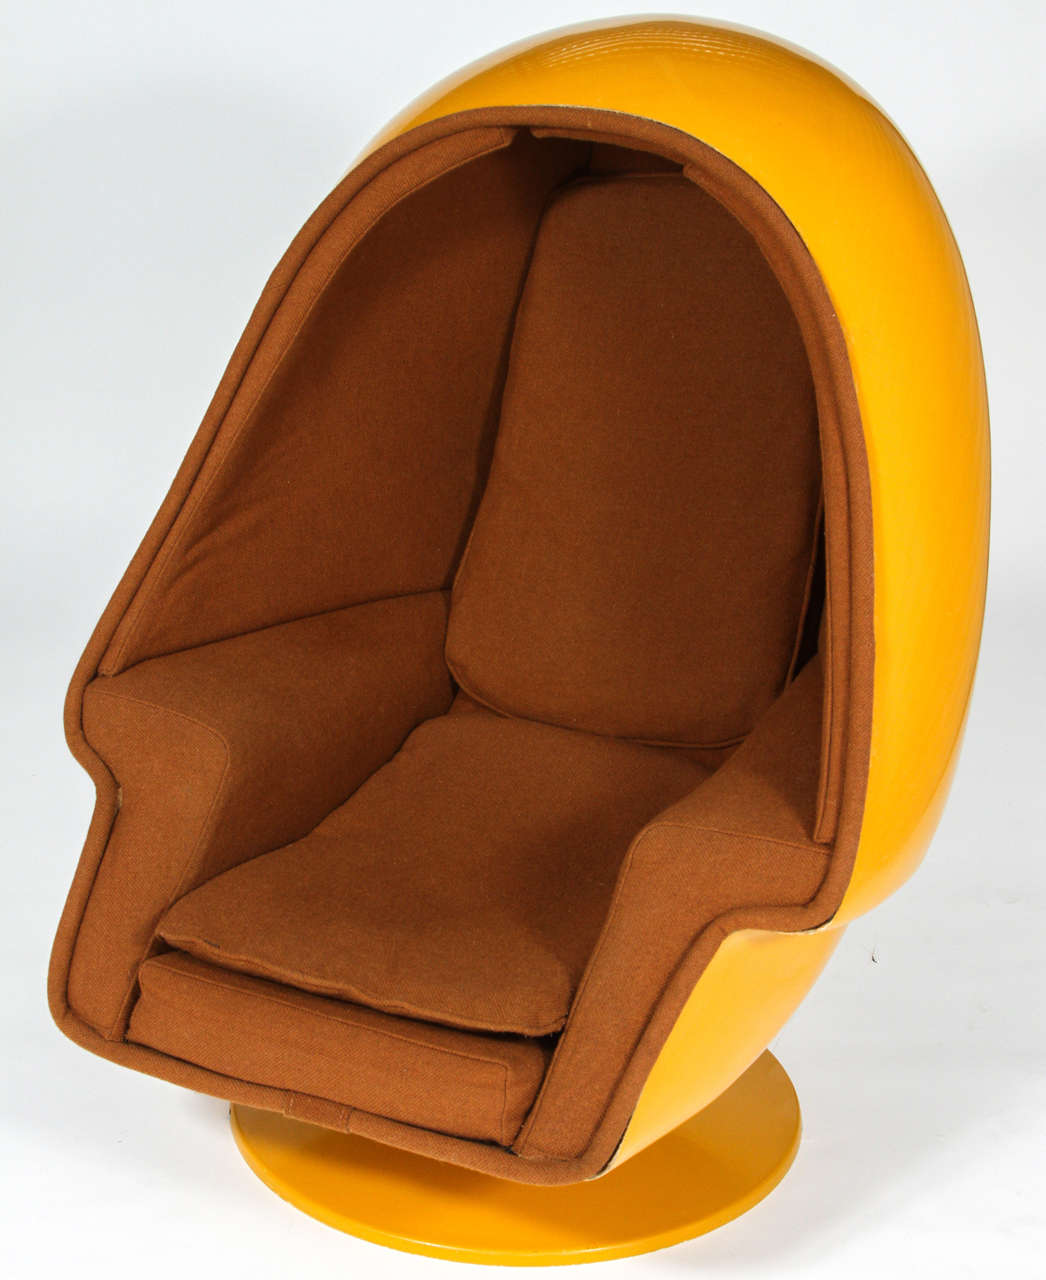 Yellow Egg Chair 1970 Vintage Lee West Alpha Chamber Egg Pod Stereo Chair